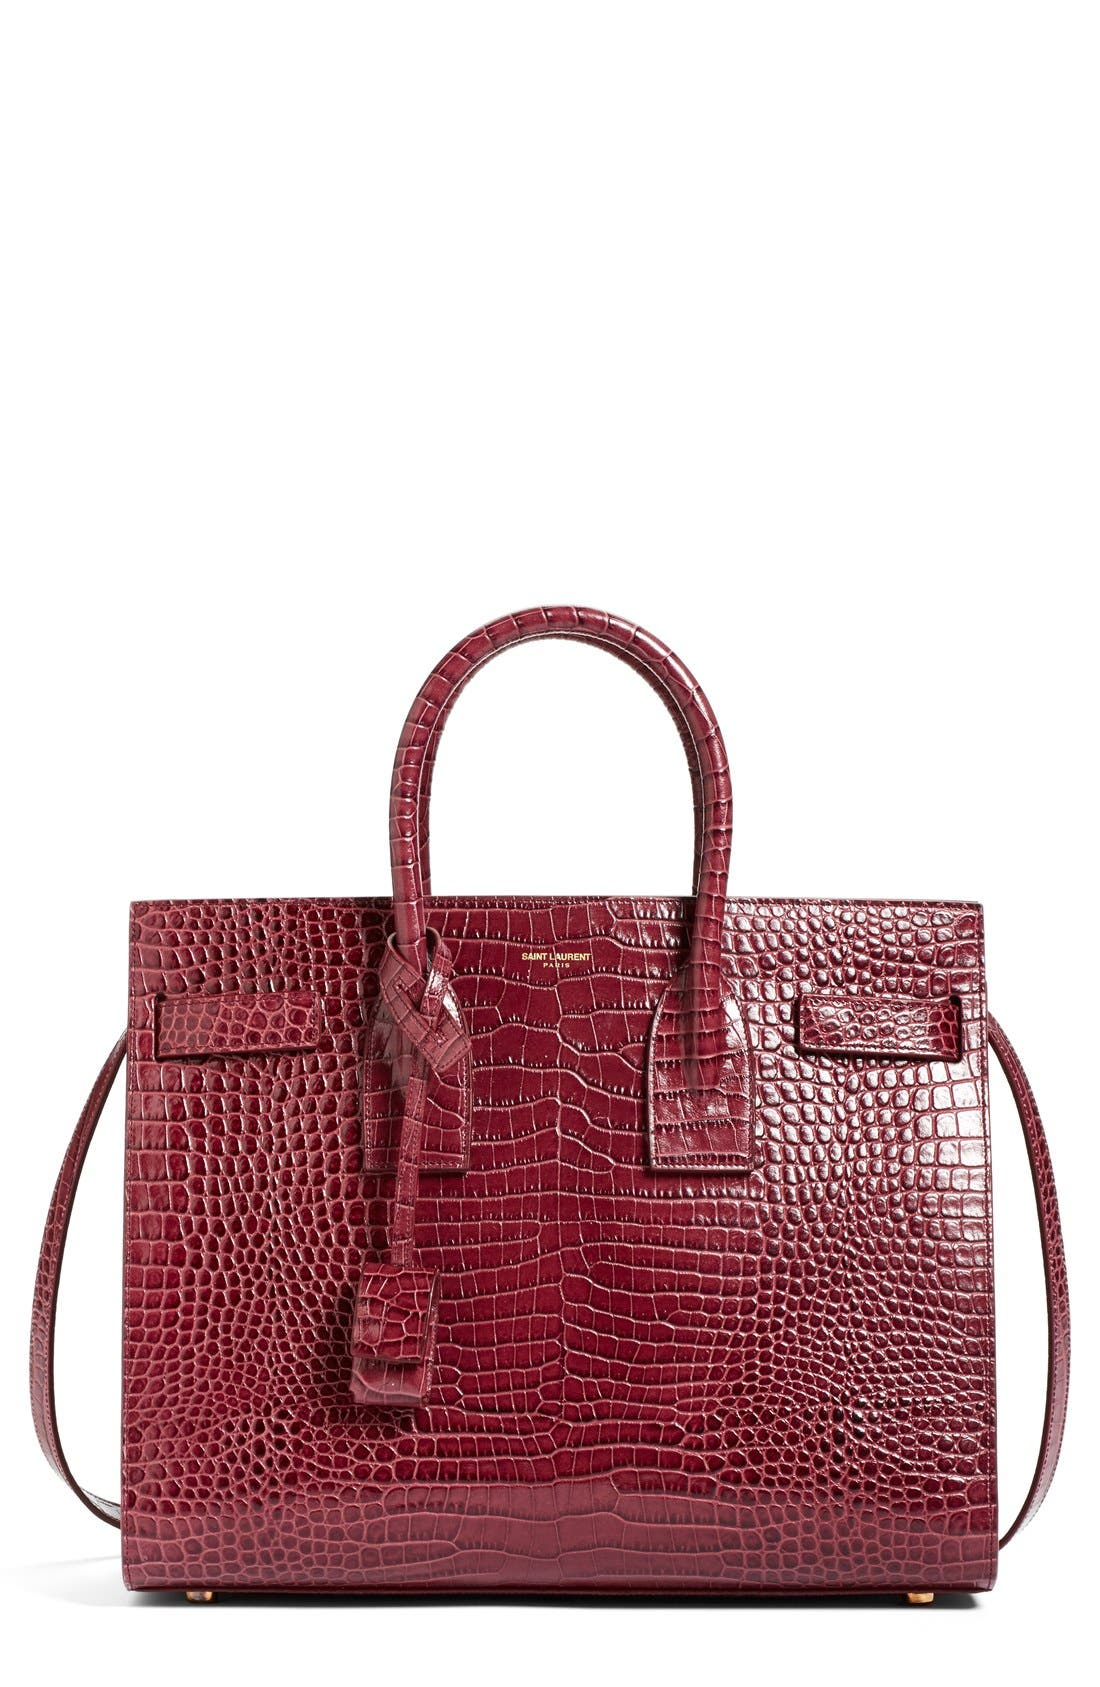 SAINT LAURENT 'Small Sac de Jour' Croc Embossed